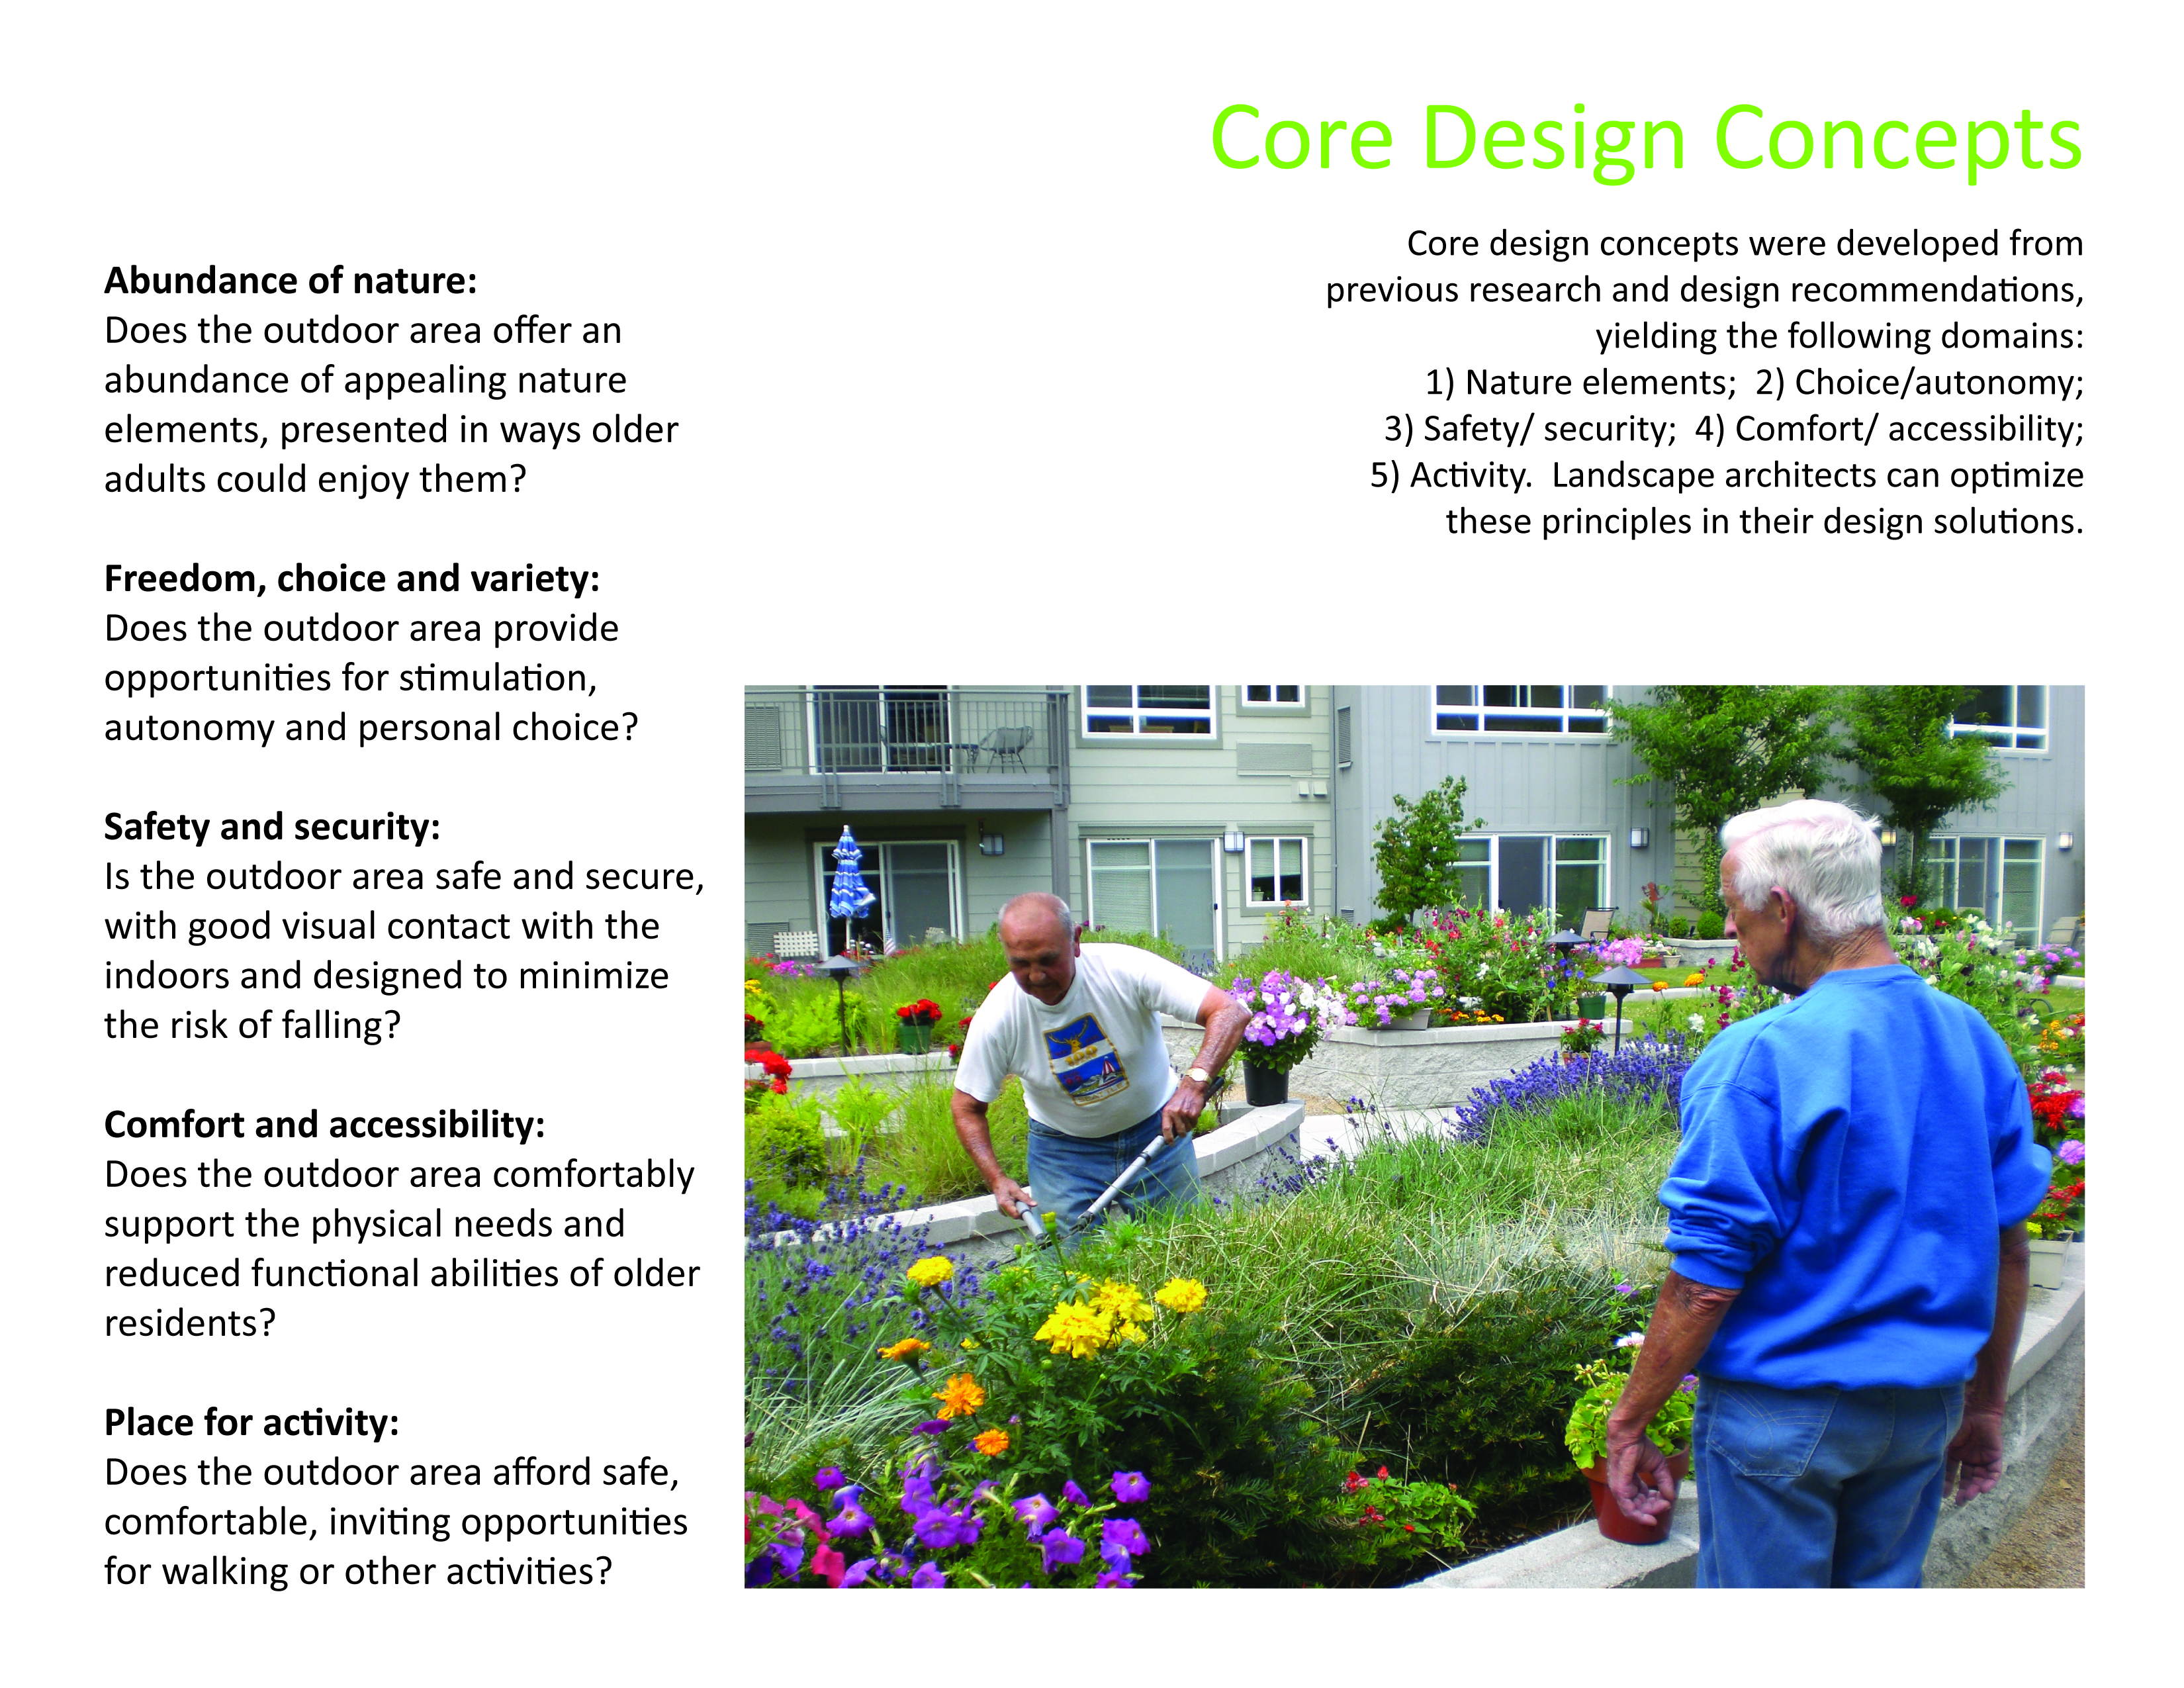 Asla 2010 professional awards access to nature for older for Architecture design for old age home